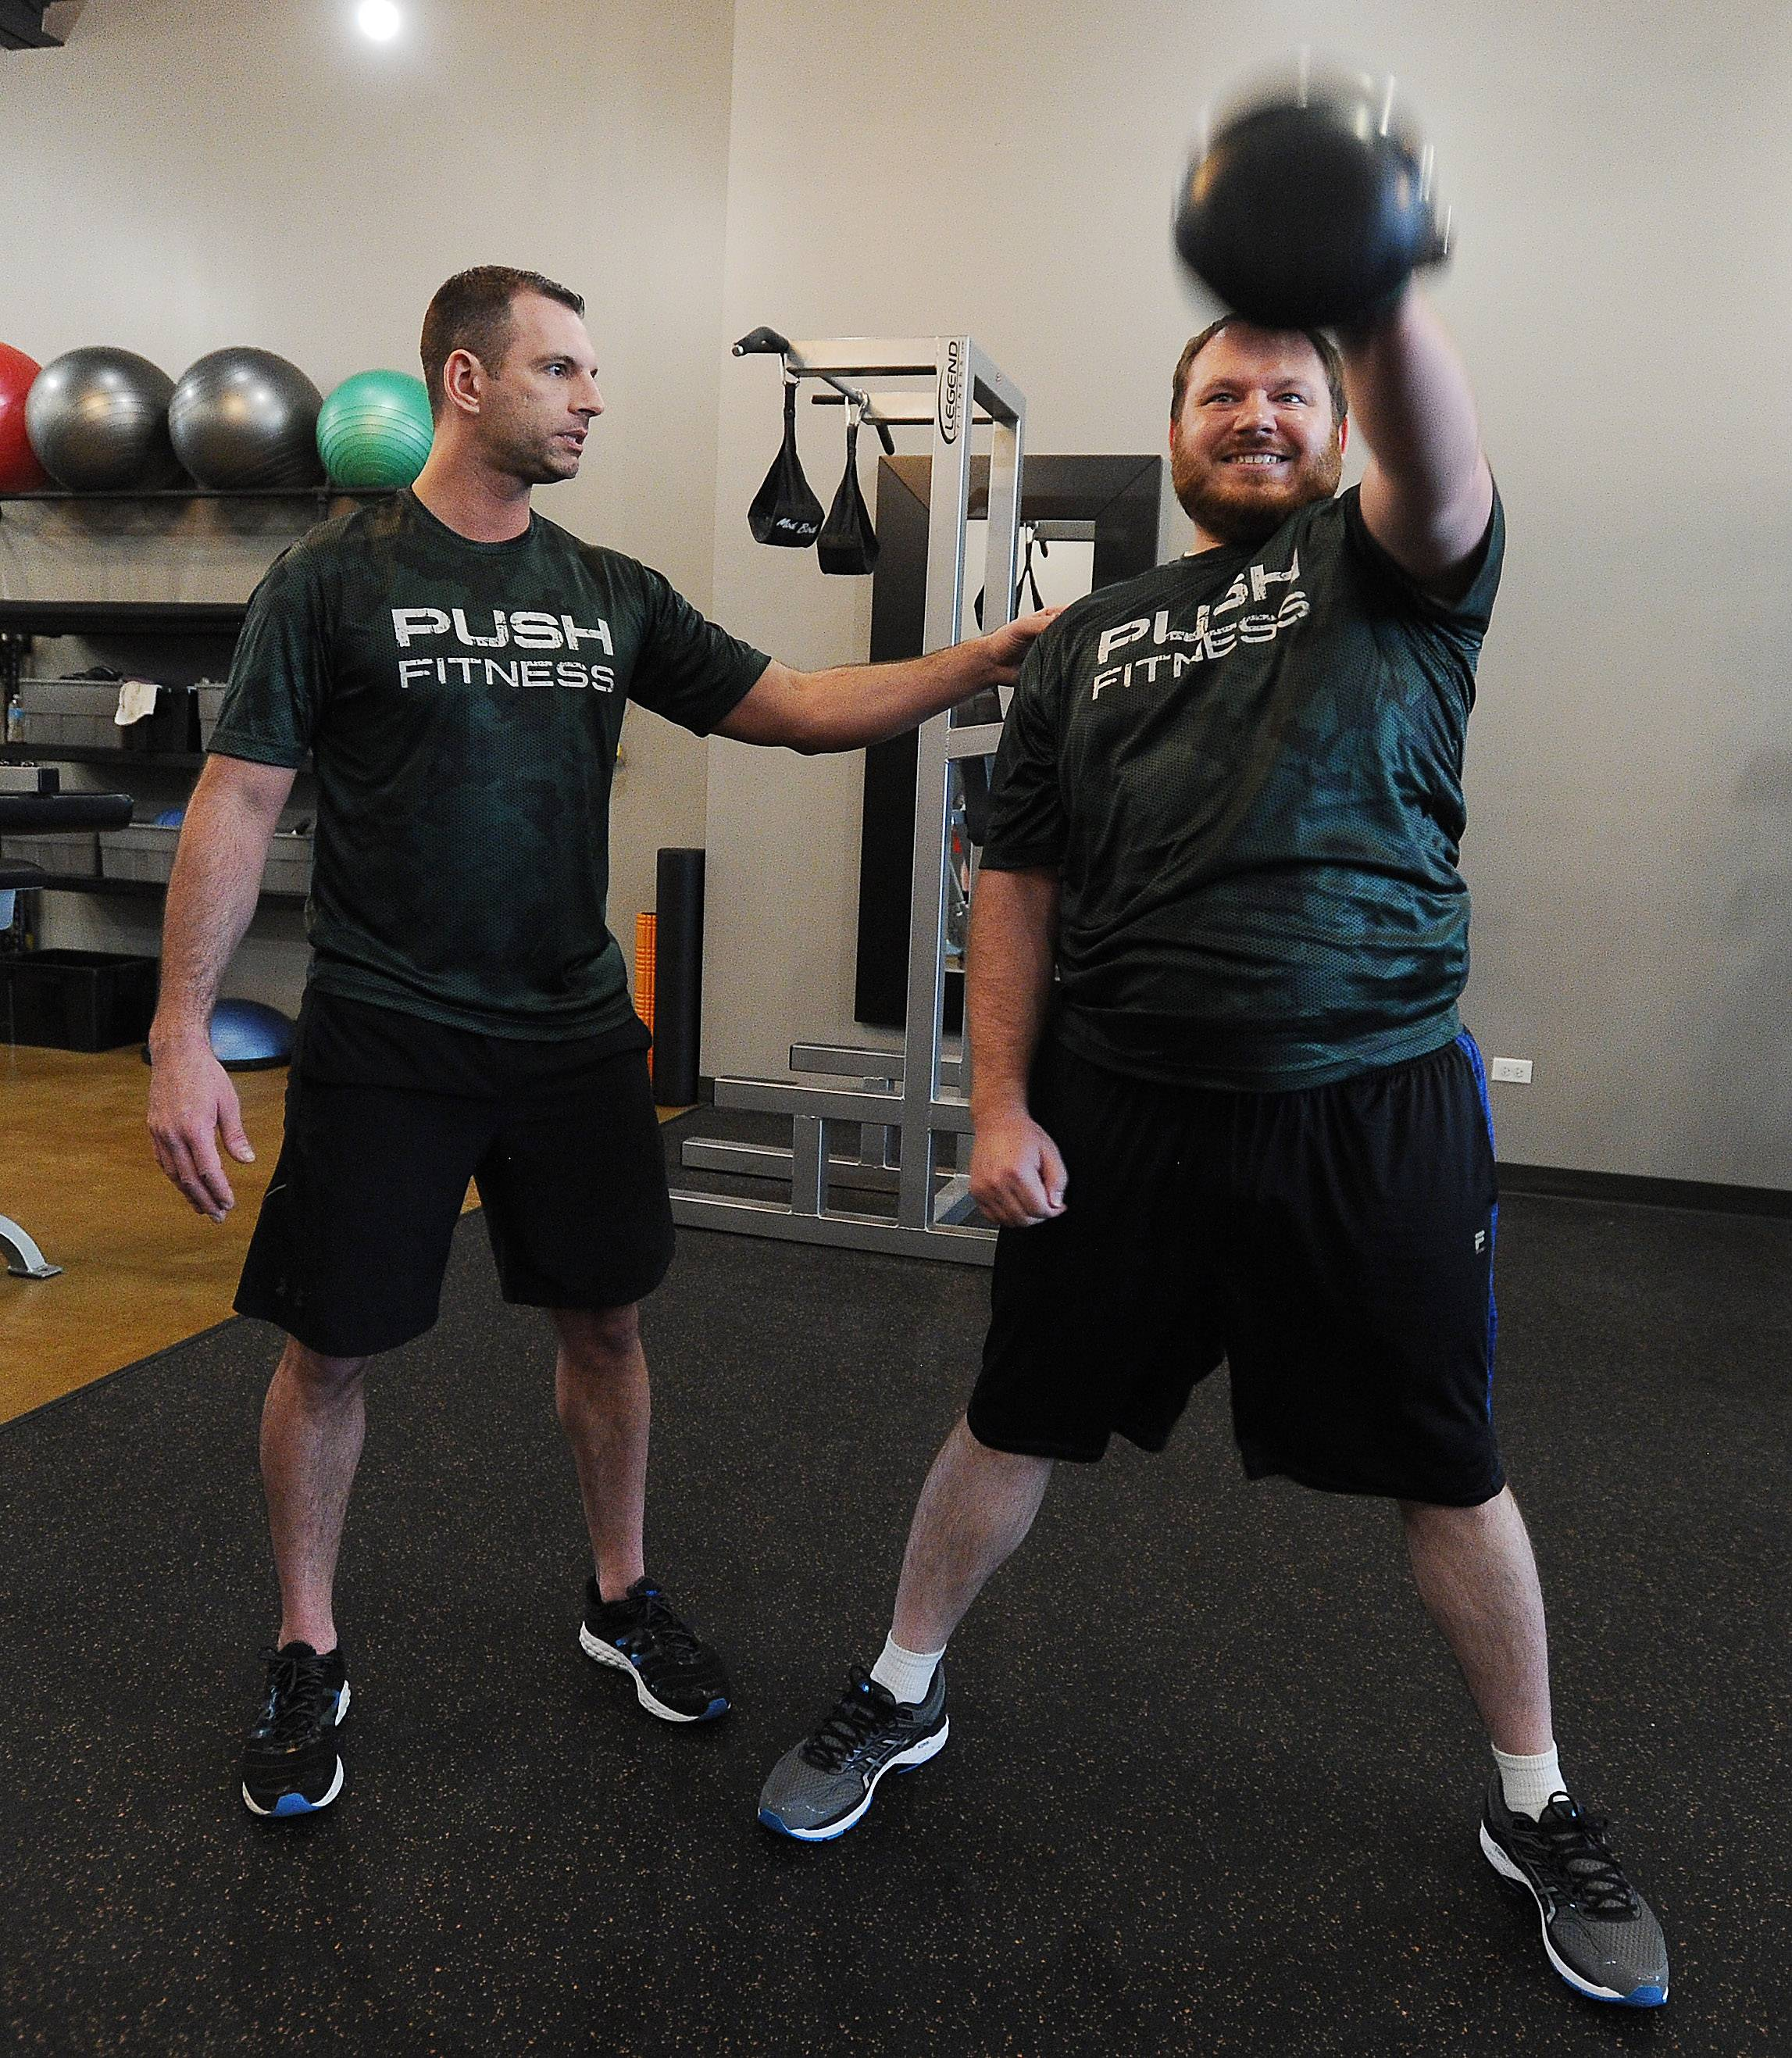 Amsden puts DeBouver through a workout at Push Fitness.